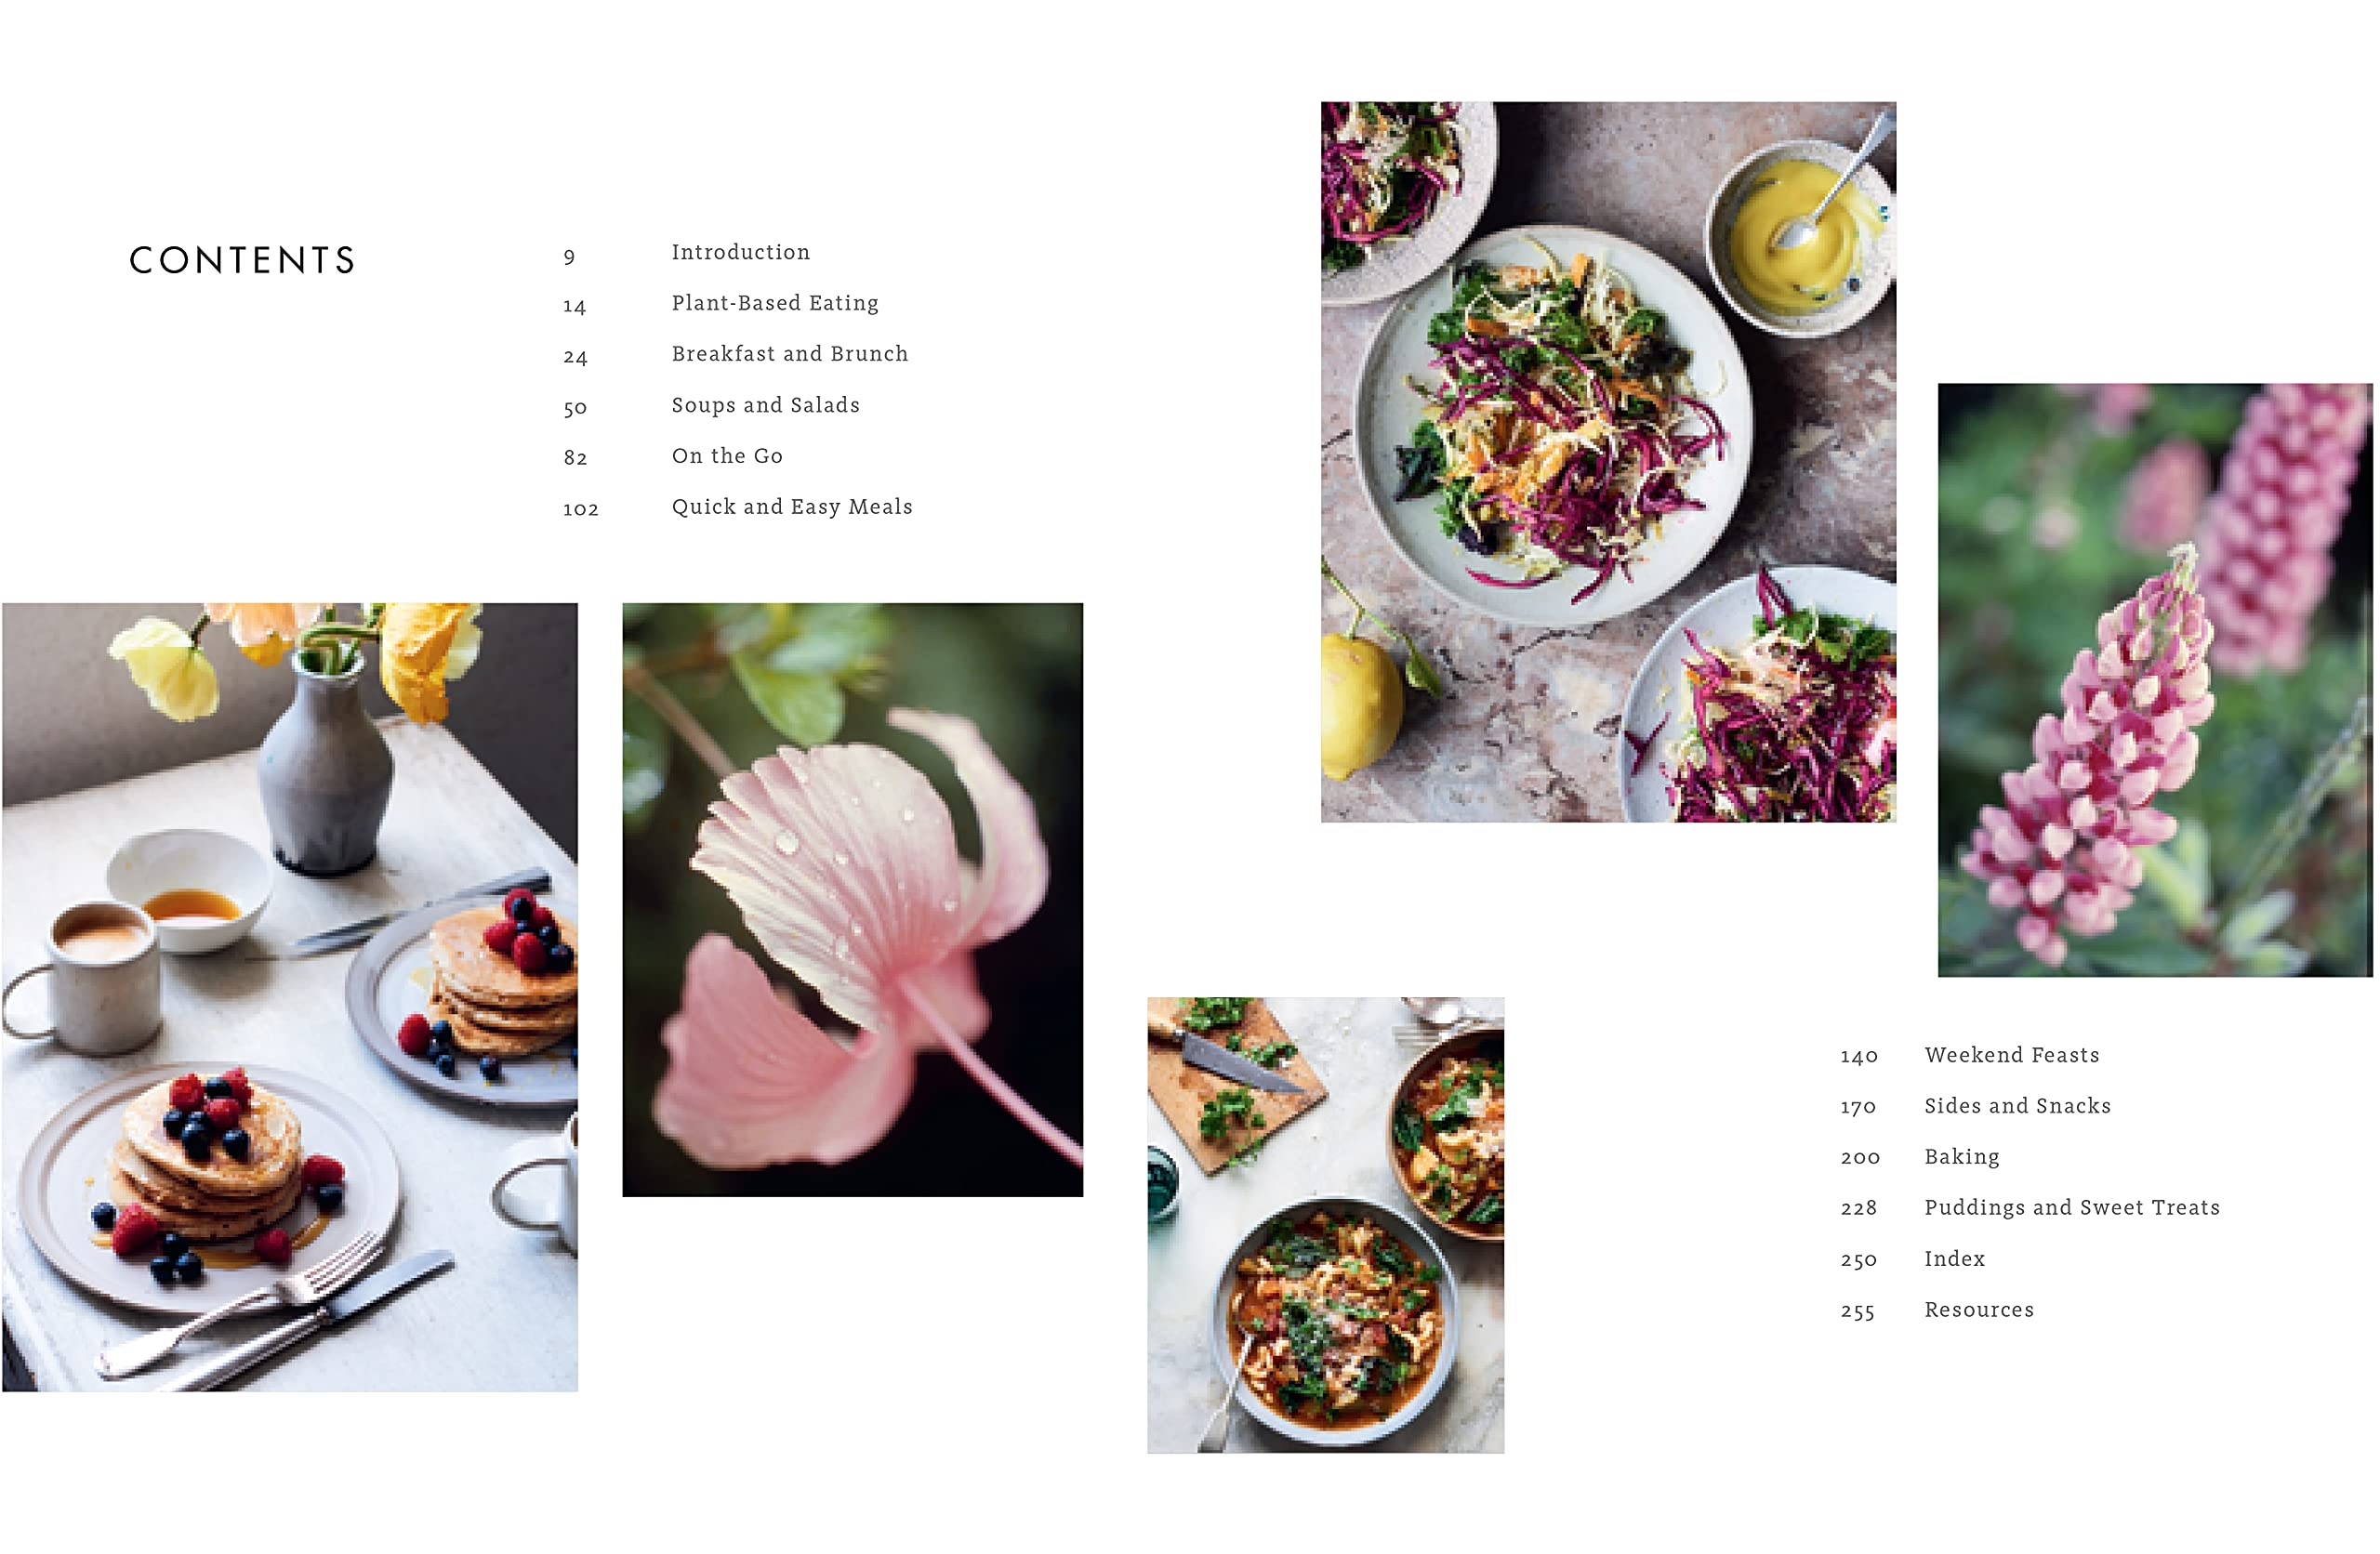 Linda McCartney's Family Kitchen: Over 90 Plant-Based Recipes to Save the  Planet and Nourish the Soul: McCartney, Linda, McCartney, Paul, McCartney,  Stella, McCartney, Mary: 9780316497985: Amazon.com: Books